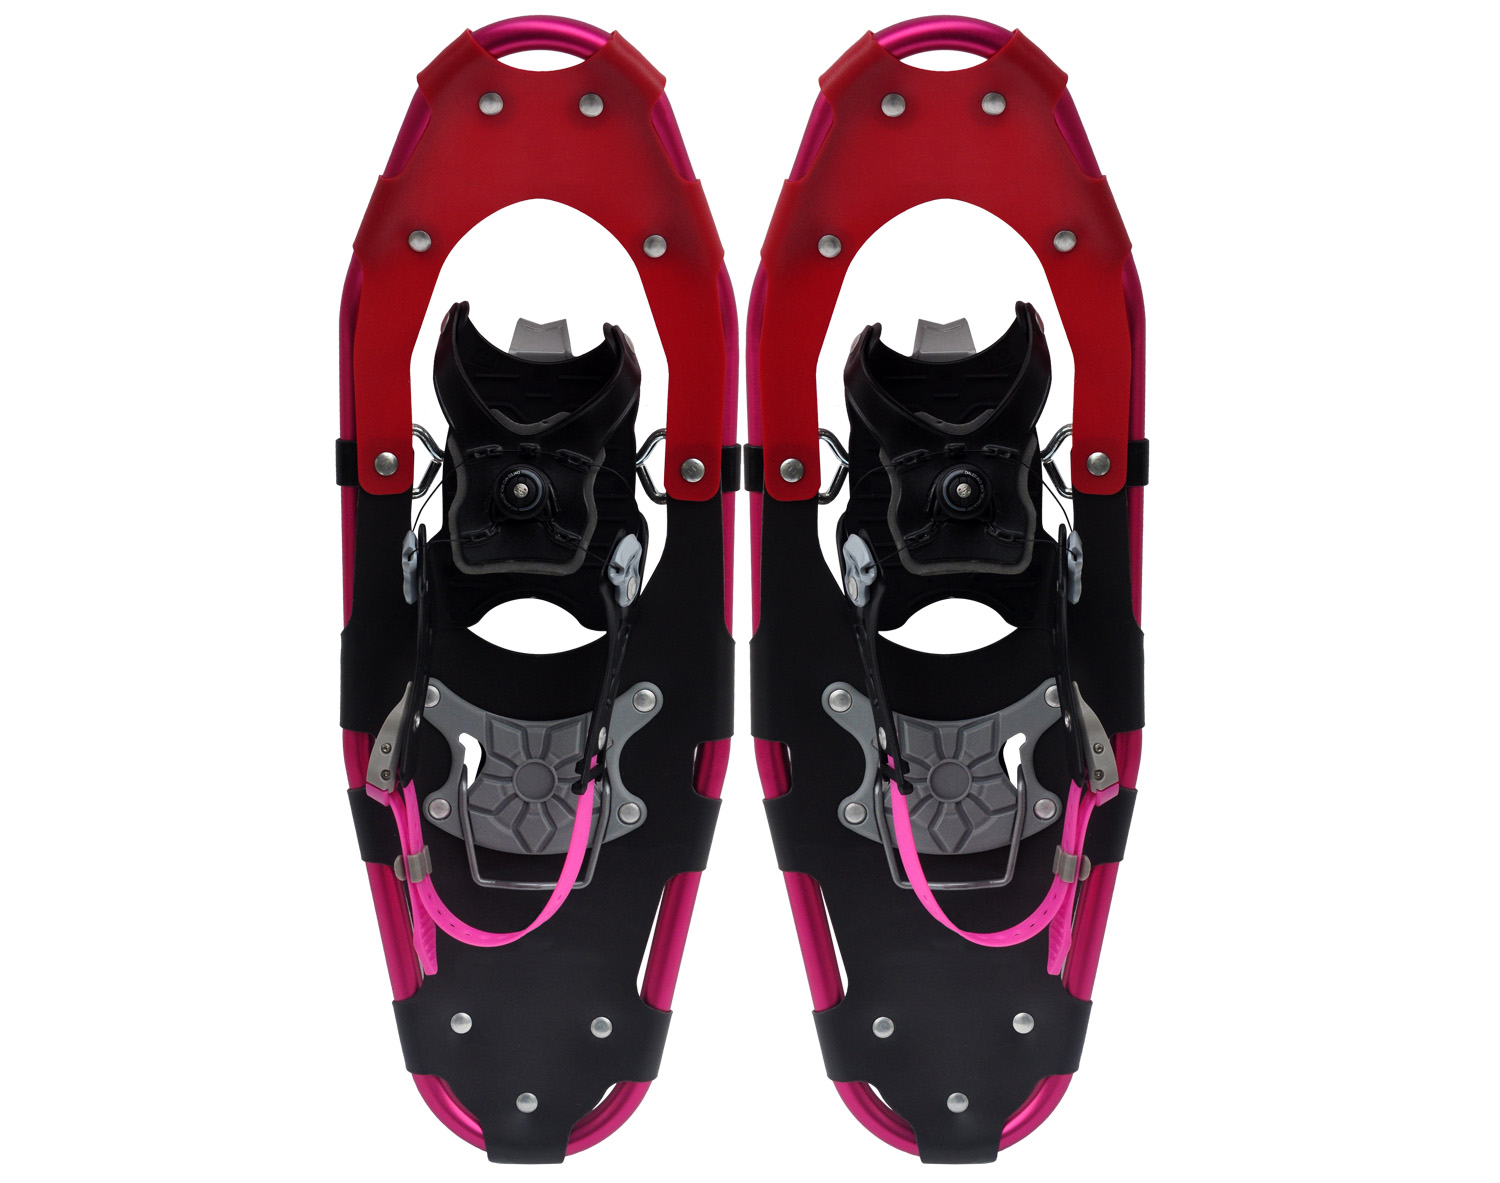 Aluminum frame BOA system snowshoes